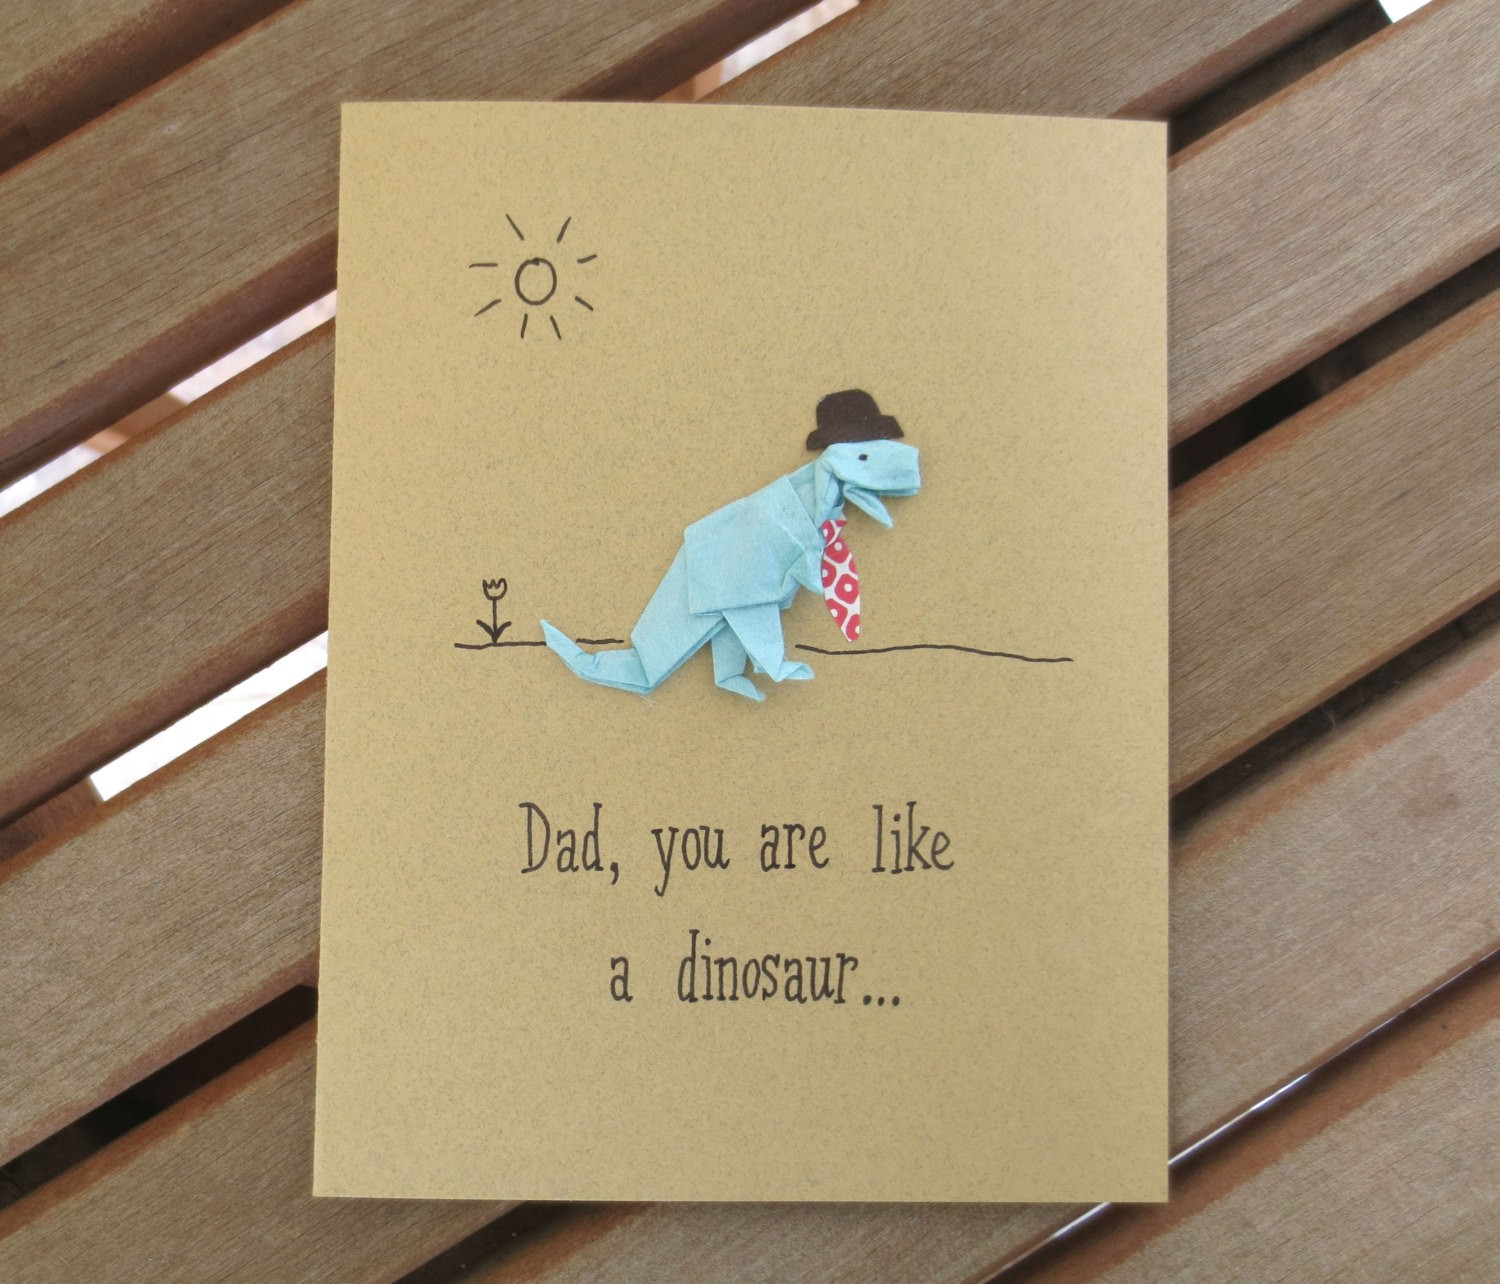 Birthday Card Ideas For Dad From Kids 100 Cool Birthday Cards For Dad Funny Birthday Card For Dad Him